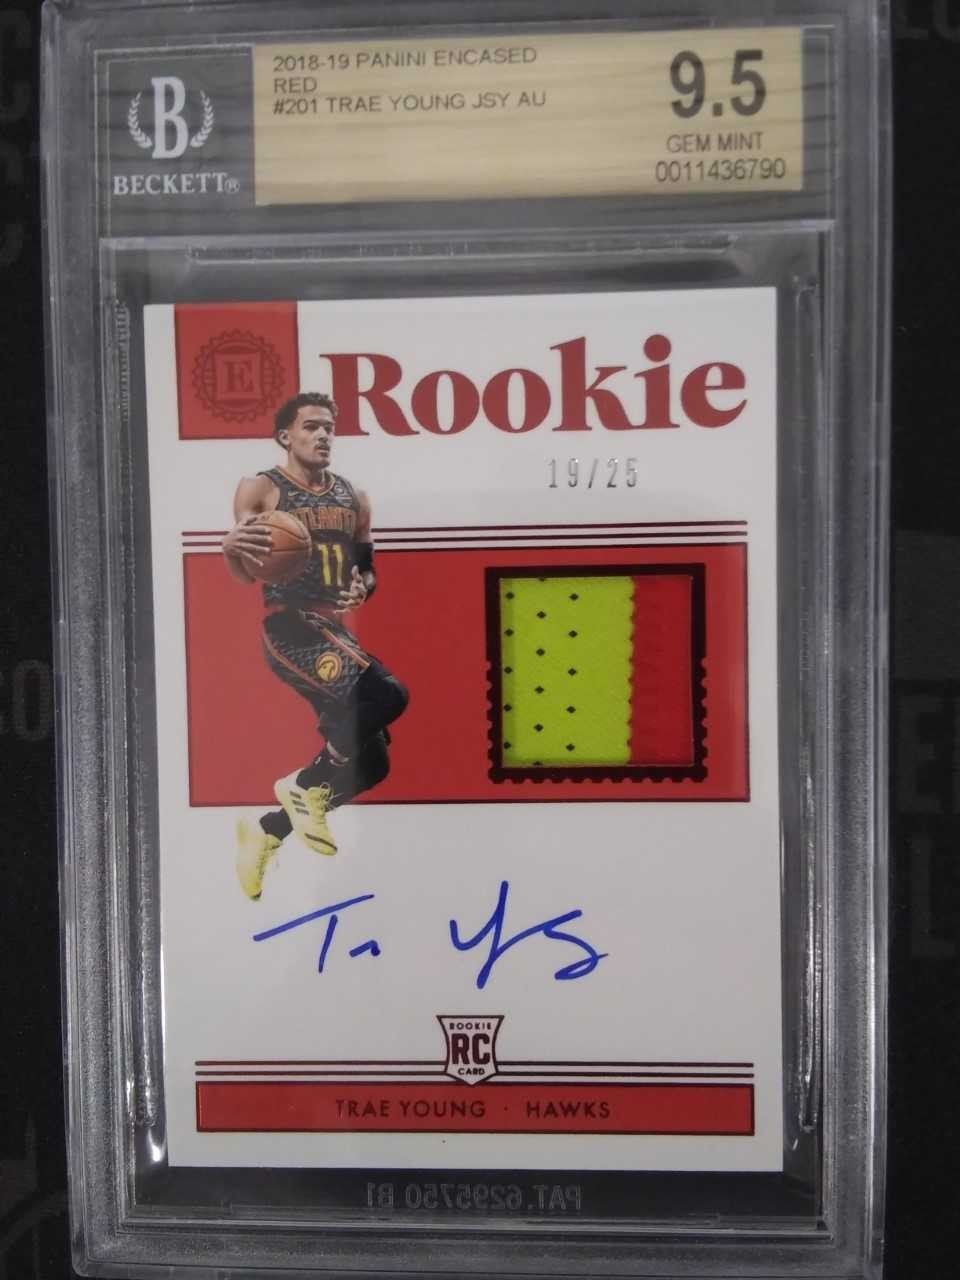 Steel City Collectibles Shop Sports Cards Gaming Cards Apparel